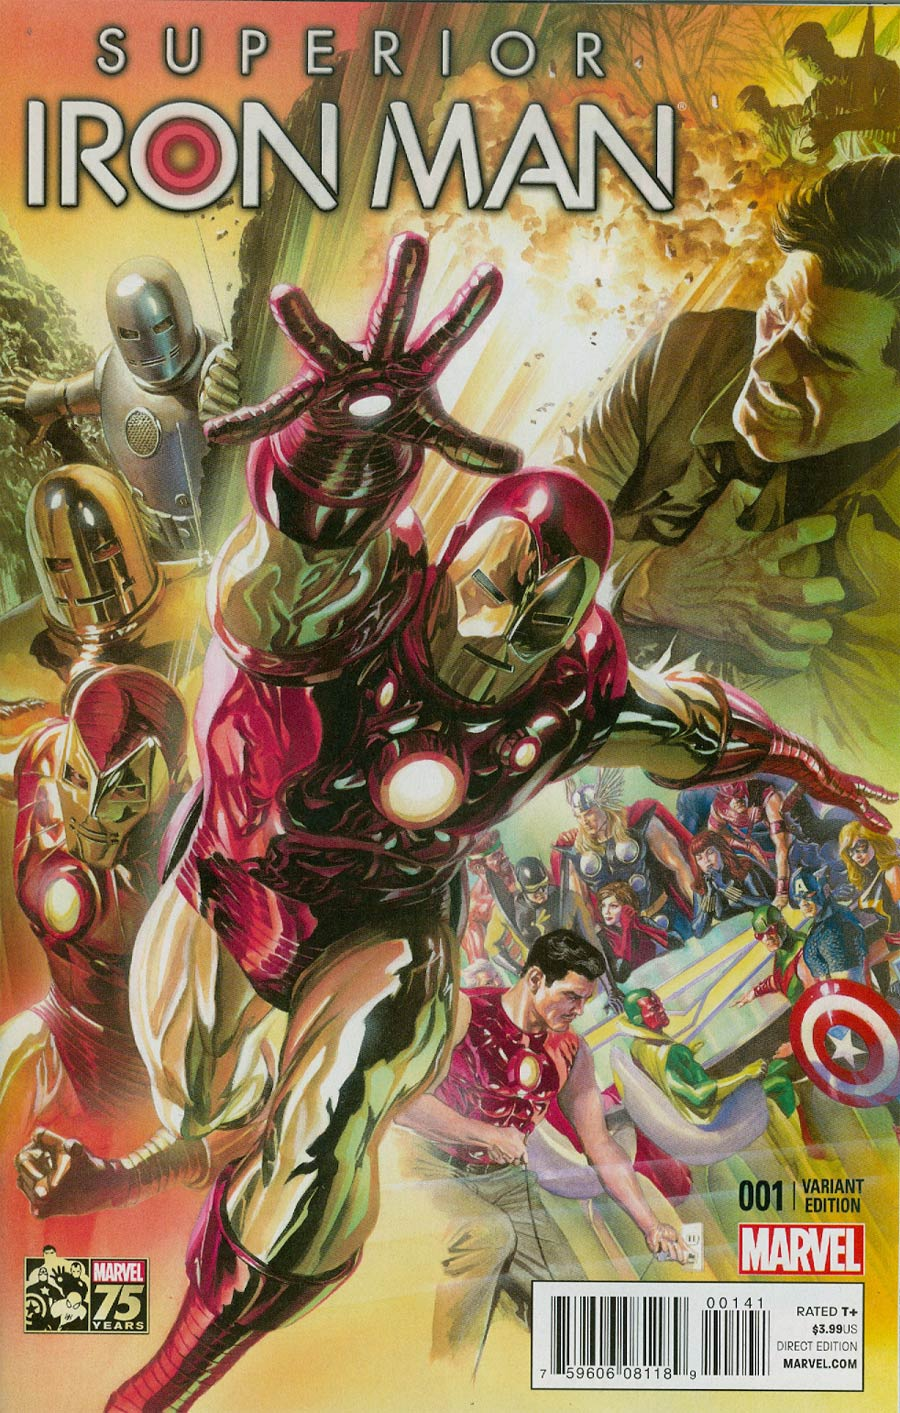 Superior Iron Man #1 Cover G Incentive Alex Ross 75th Anniversary Color Variant Cover (AXIS Tie-In)